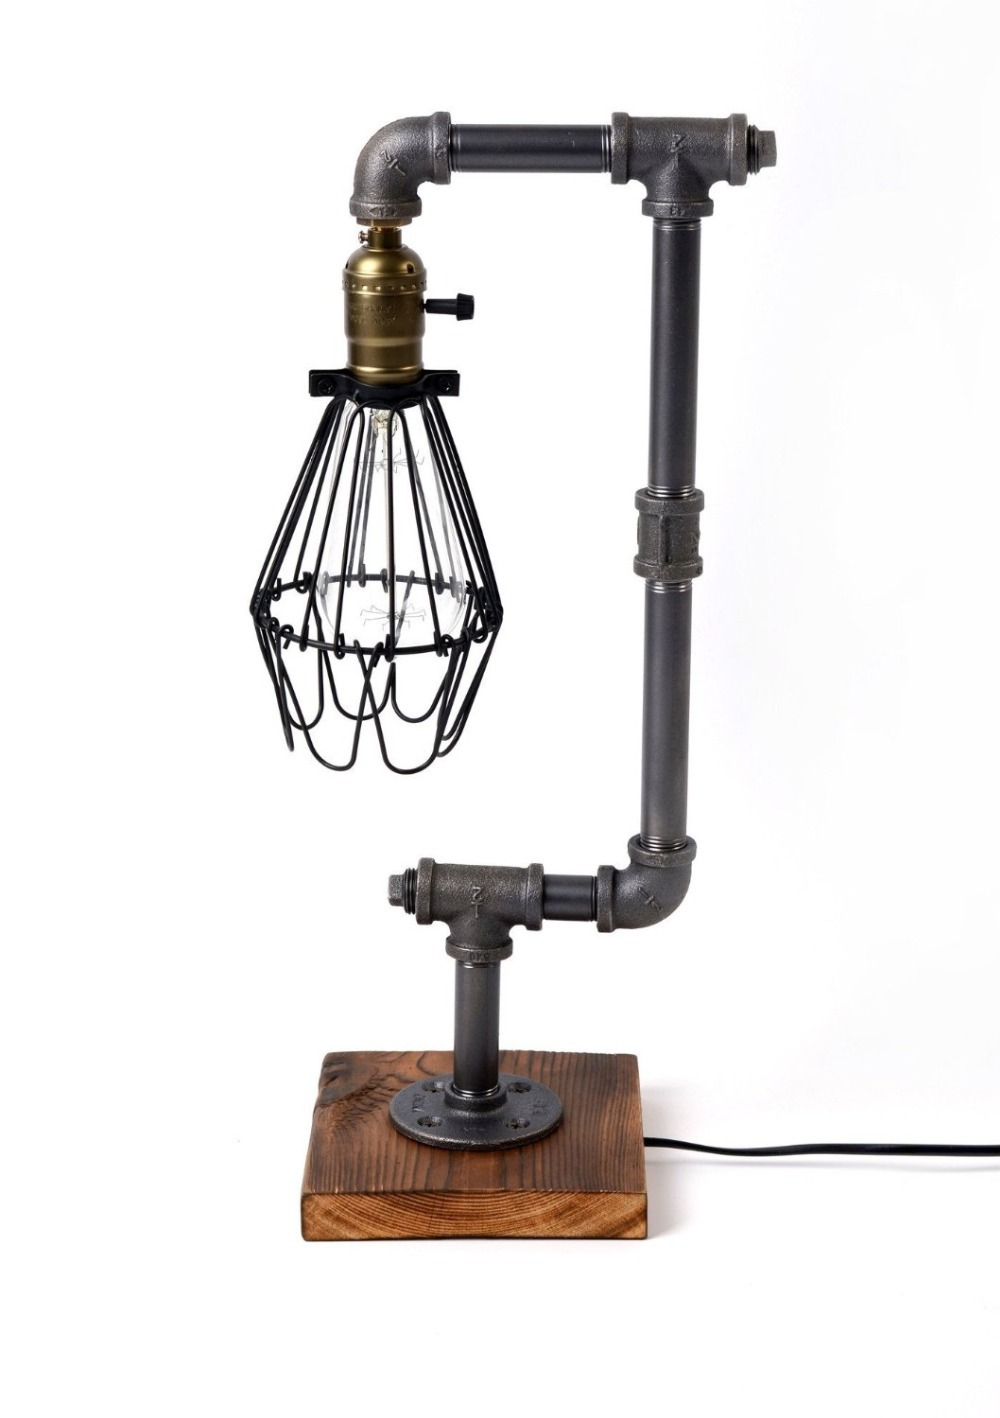 Table lamp vintage style - Loft Living Designer Lifestyle Cage Water Pipe Desk Light Table Lamp Led Antique Steel Piping Retro